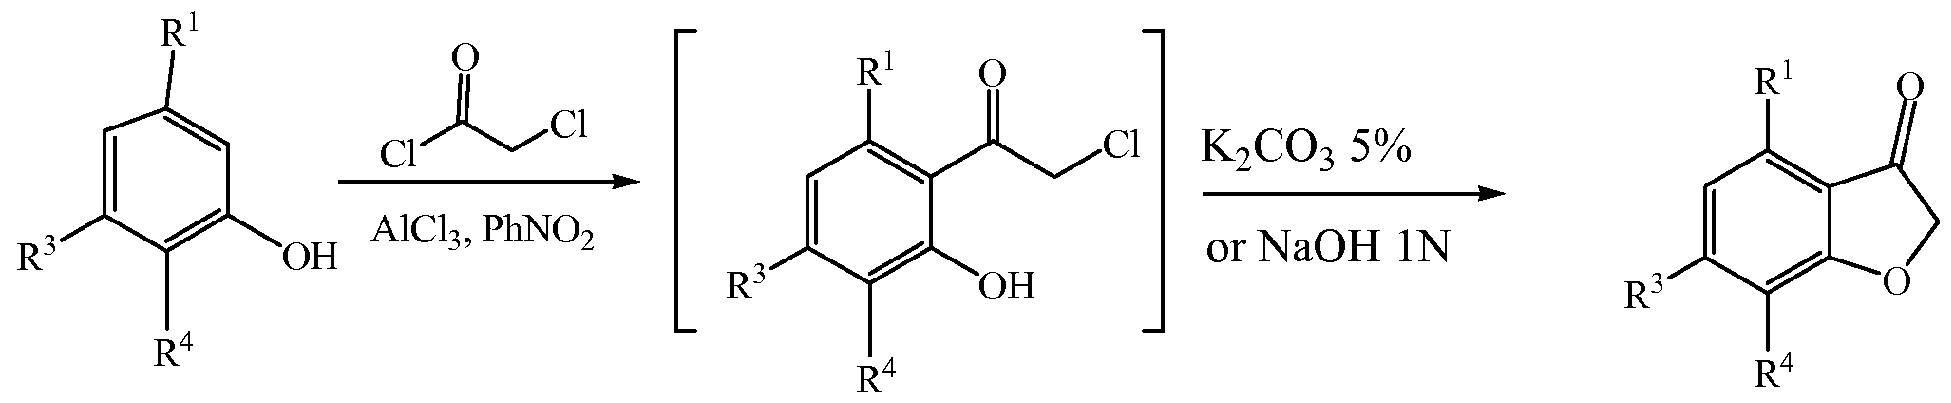 synthesis of 2 methoxy 6 p tolyliminomethyl phenol The mitsunobu reaction is very important reaction for the synthesis of ether from phenol and alcohol the [7-methoxy-2-(4-methoxyphenyl)-1-benzofuran-5-yl]methanol (2) was synthesised from vanillin by using series of known reactions such as mannich reaction, acetylation, hydrolysis, wittig raction, hydrobation.